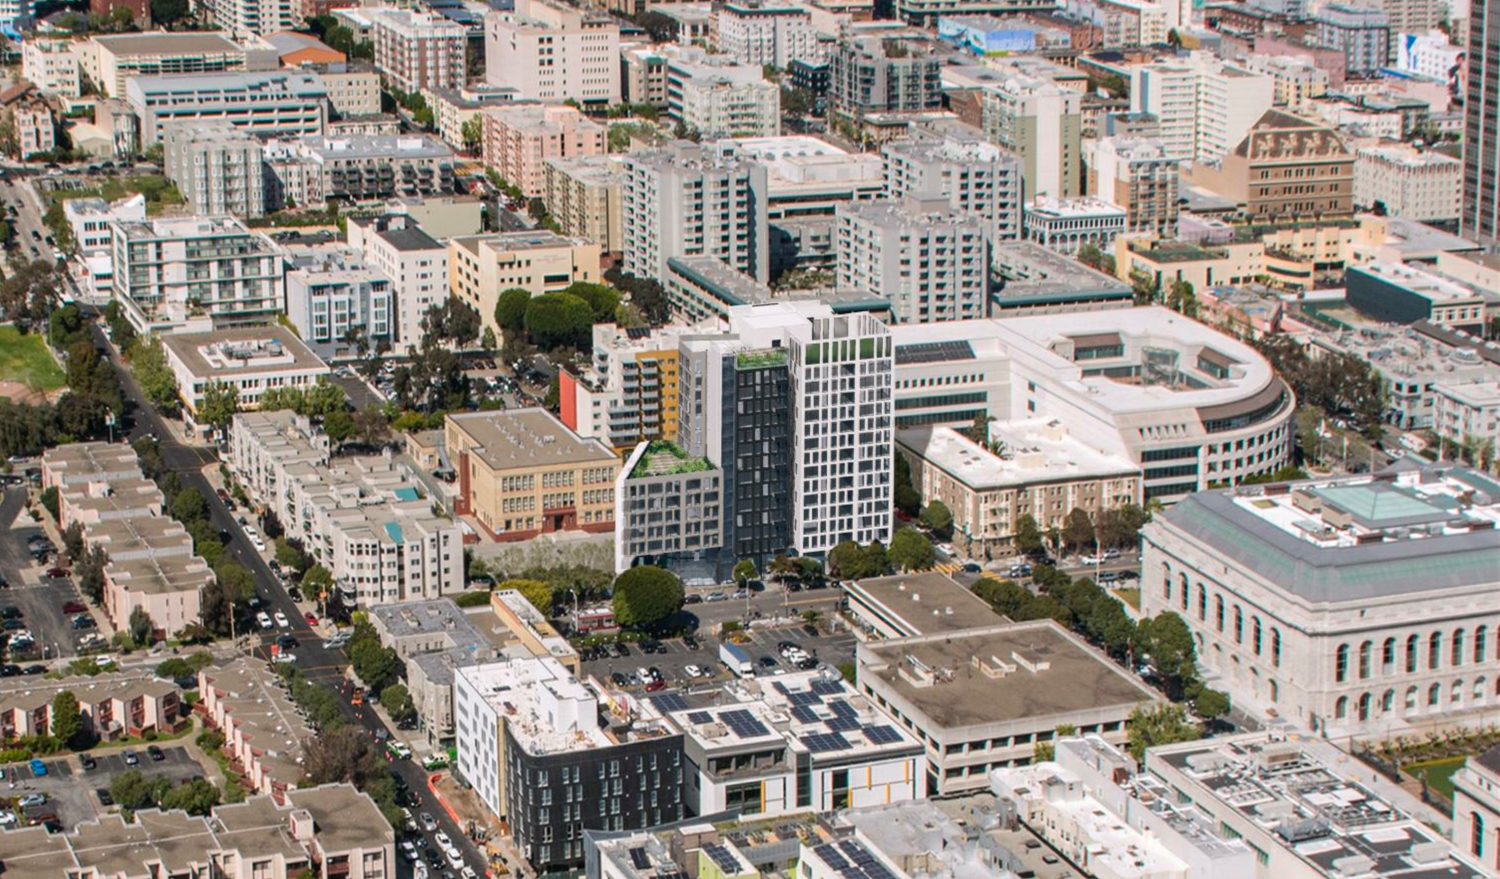 600 McAllister Street aerial view, rendering by David Baker Architects